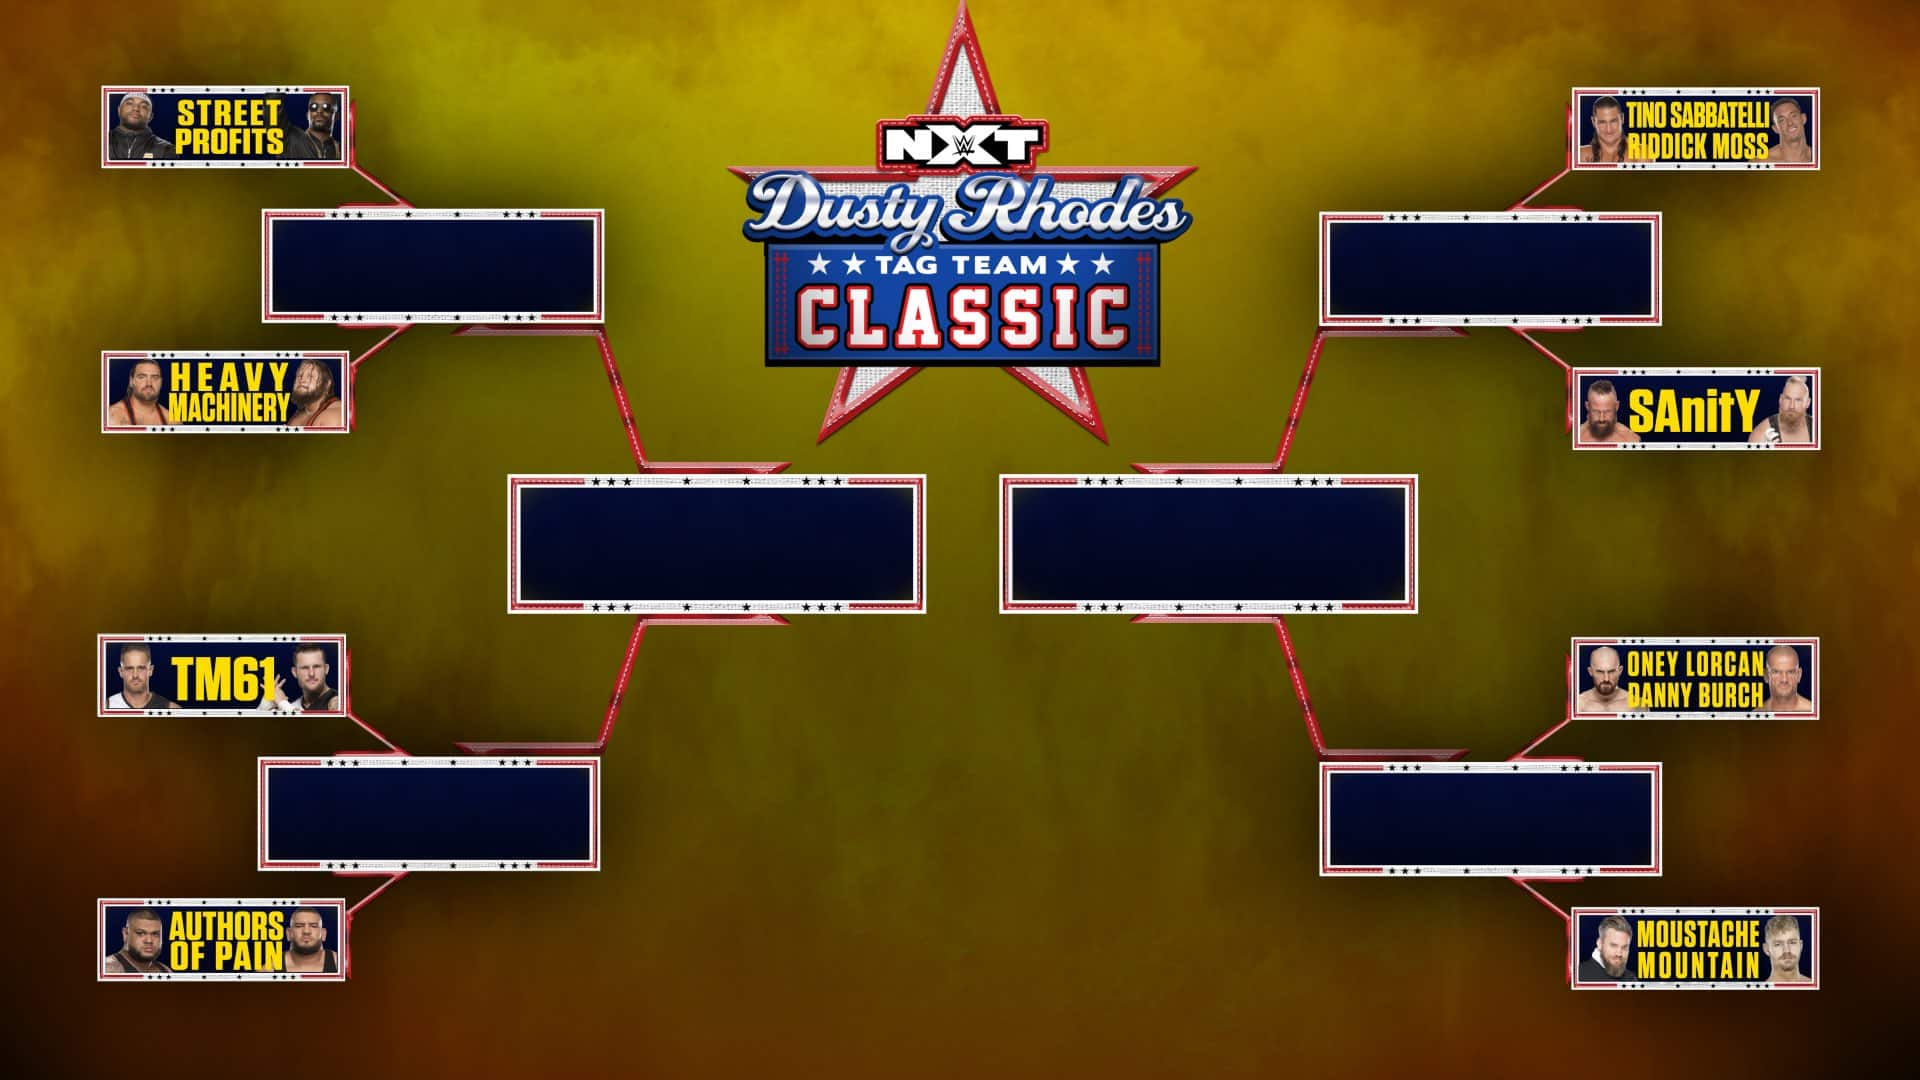 The WWE NXT Dusty Rhodes Tag Team Classic is Back